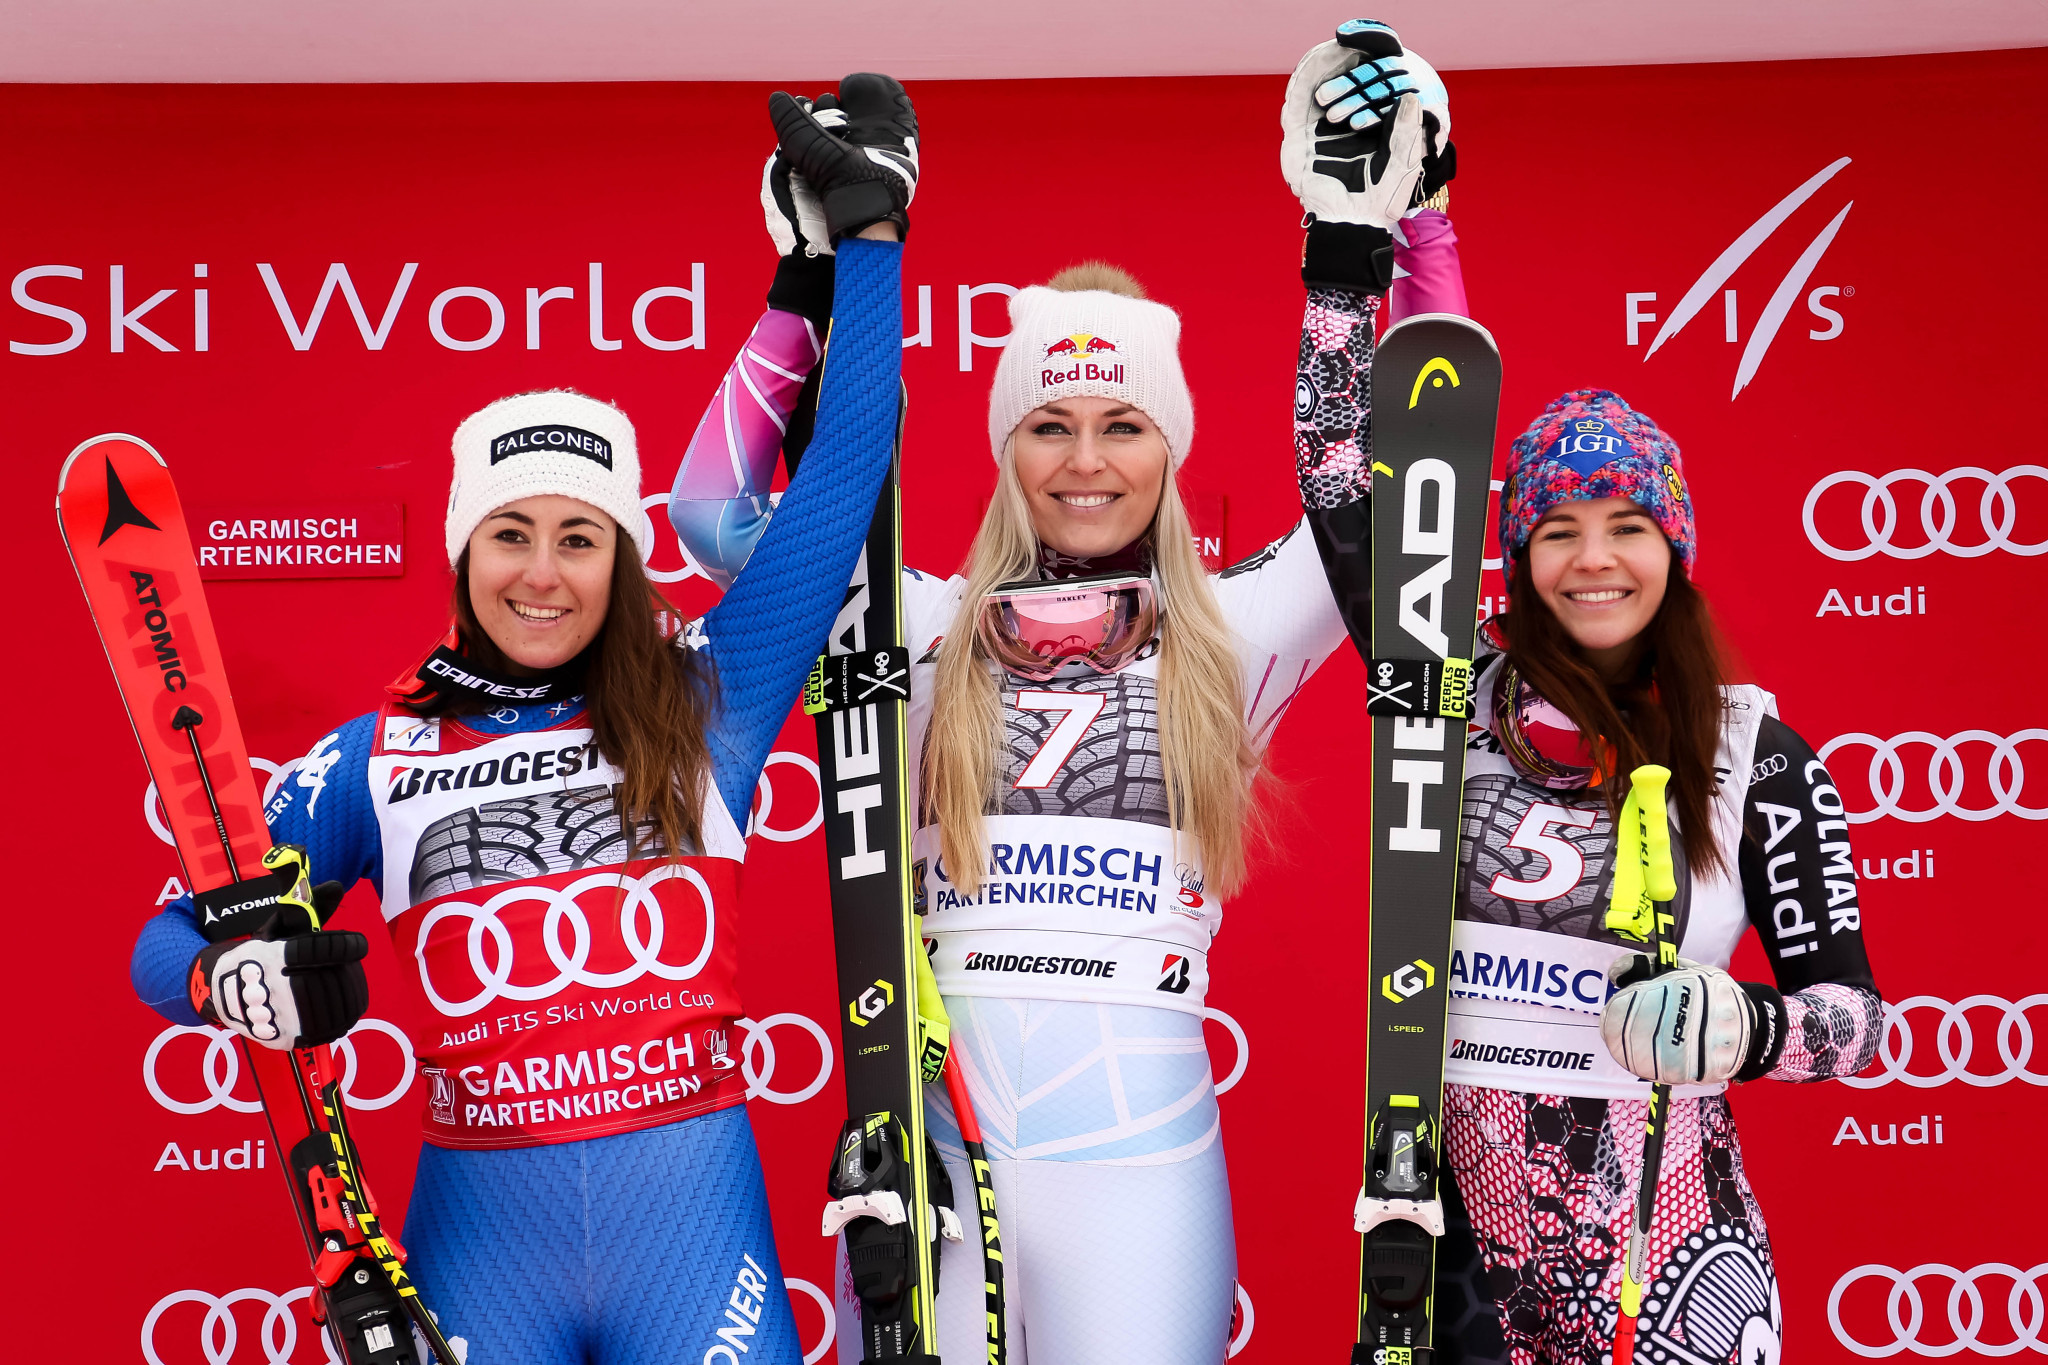 Vonn moves to 81 World Cup wins but another US colleague crashes at Garmisch-Partenkirchen